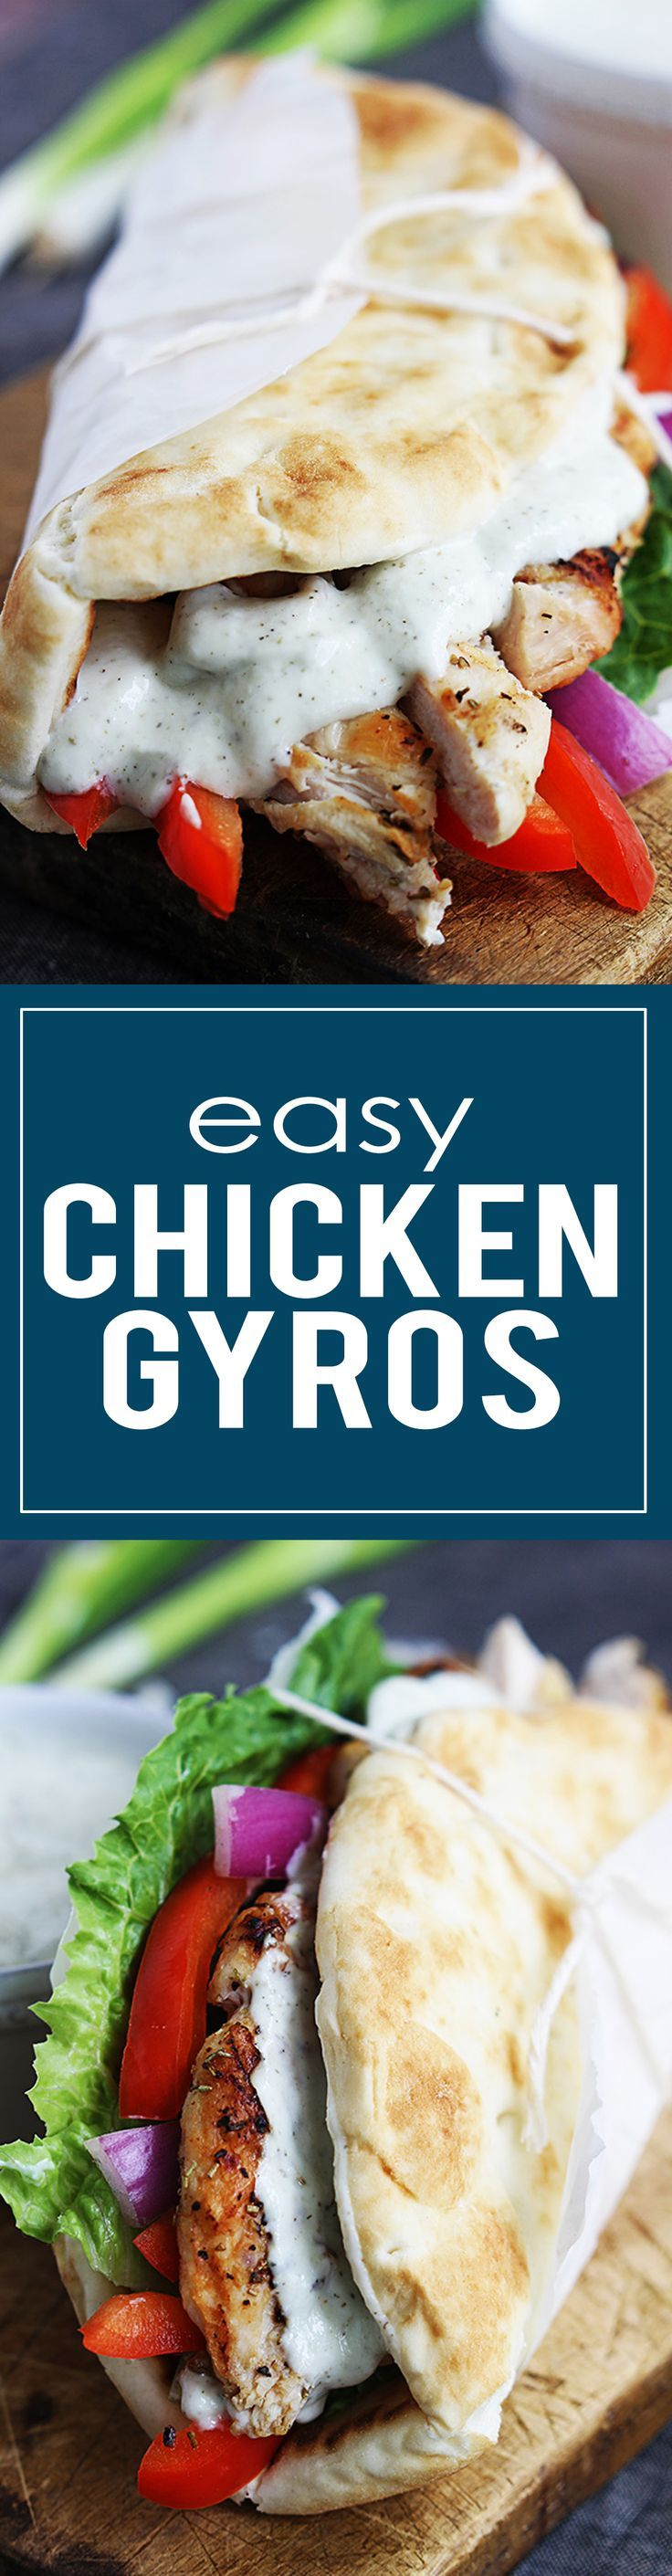 20 minute Easy Chicken Gyros with quick Tzatziki cucumber sauce are delicious, healthy, and flavorful